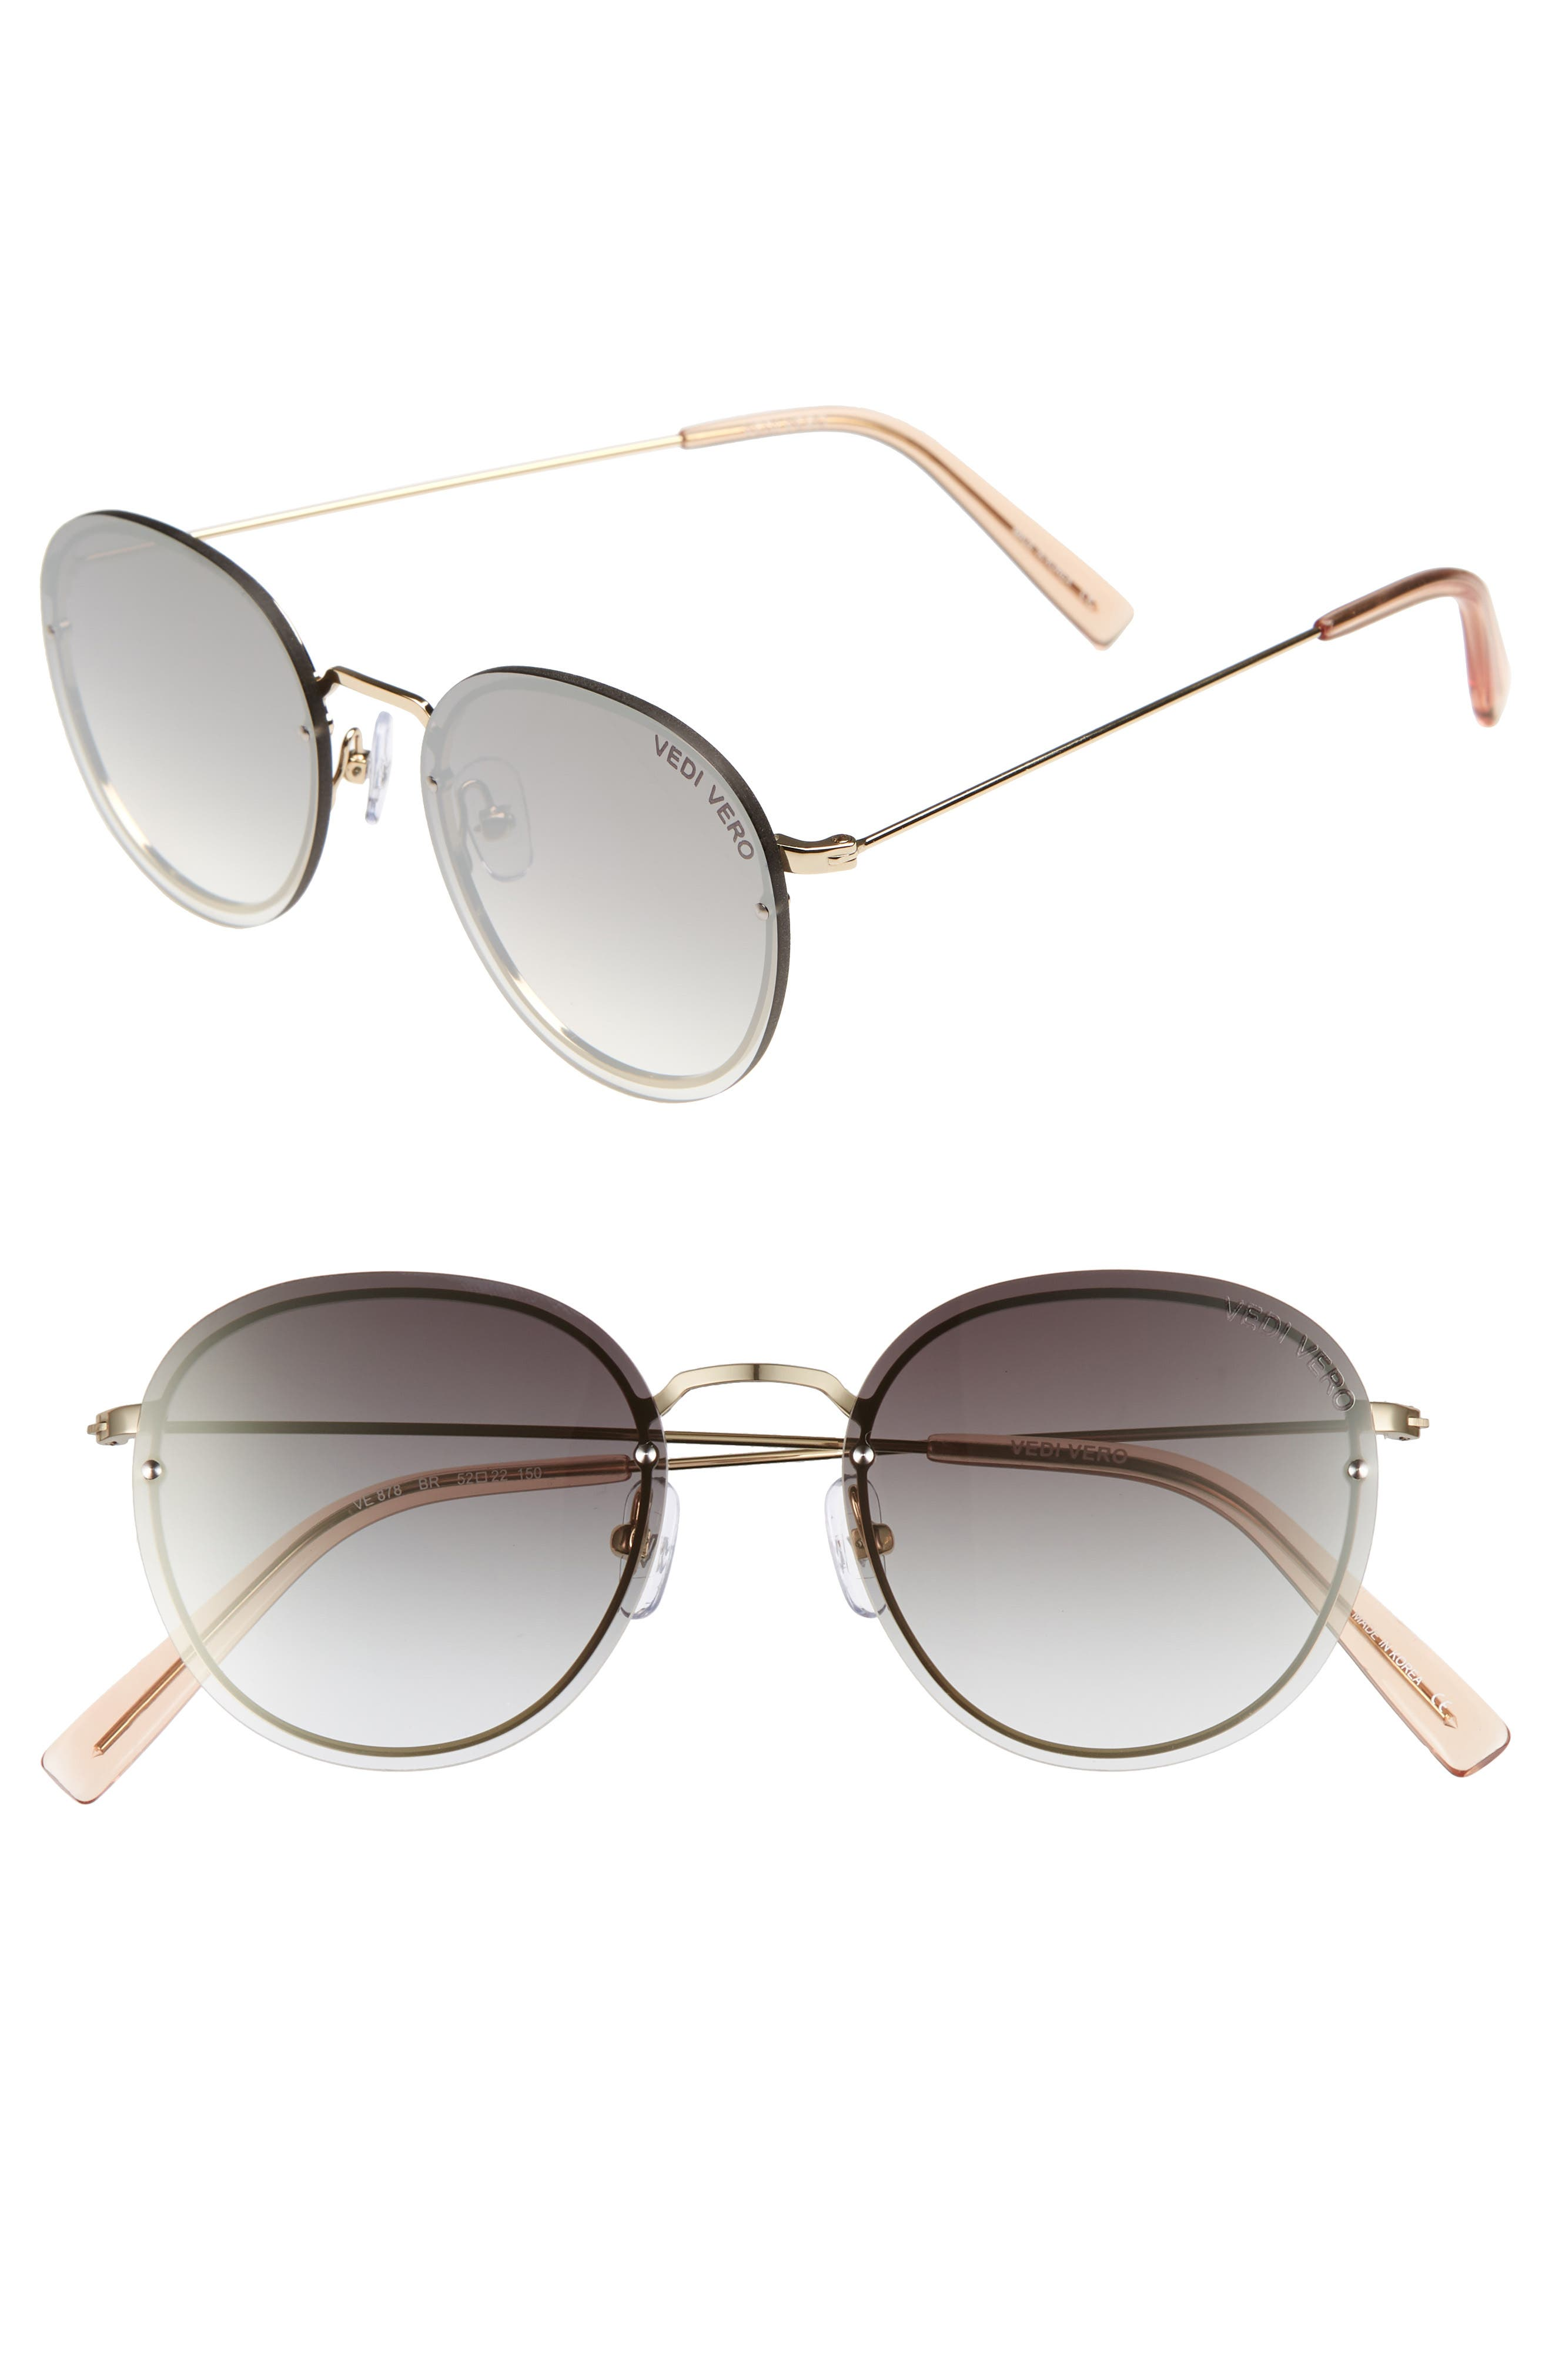 VEDI VERO 52Mm Round Sunglasses - Shiny Gold